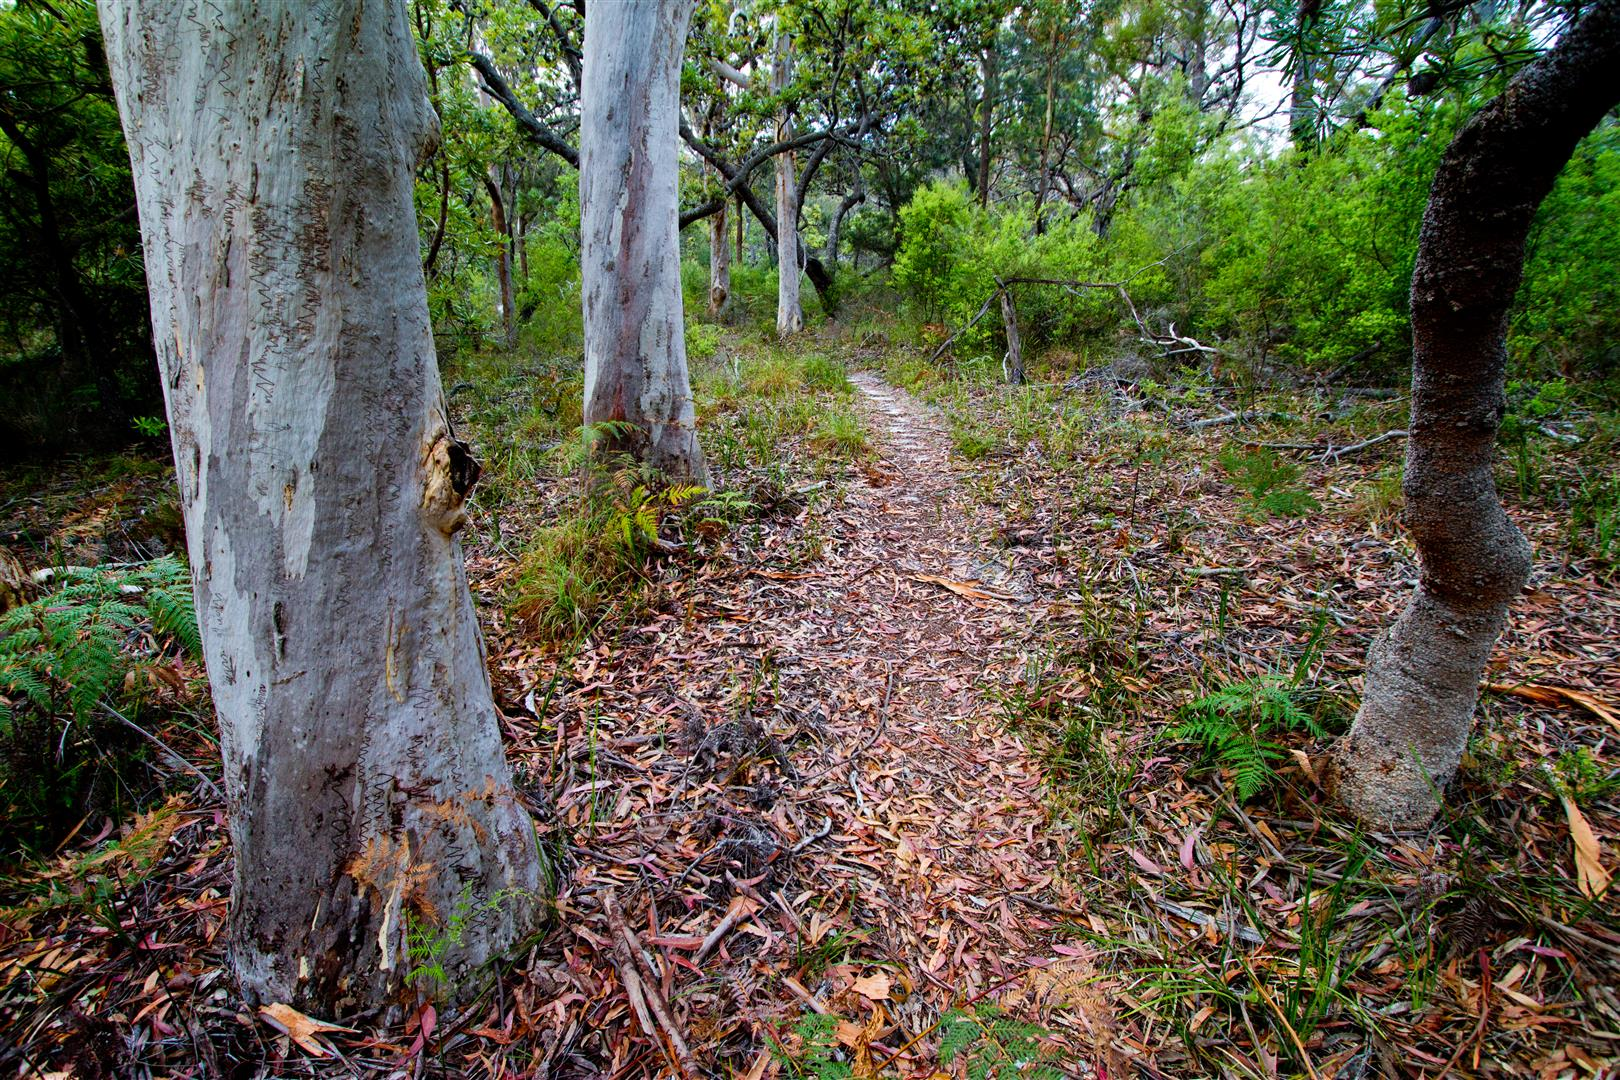 The path to Neembeeba Lookout, Karboora section of the island's national park.